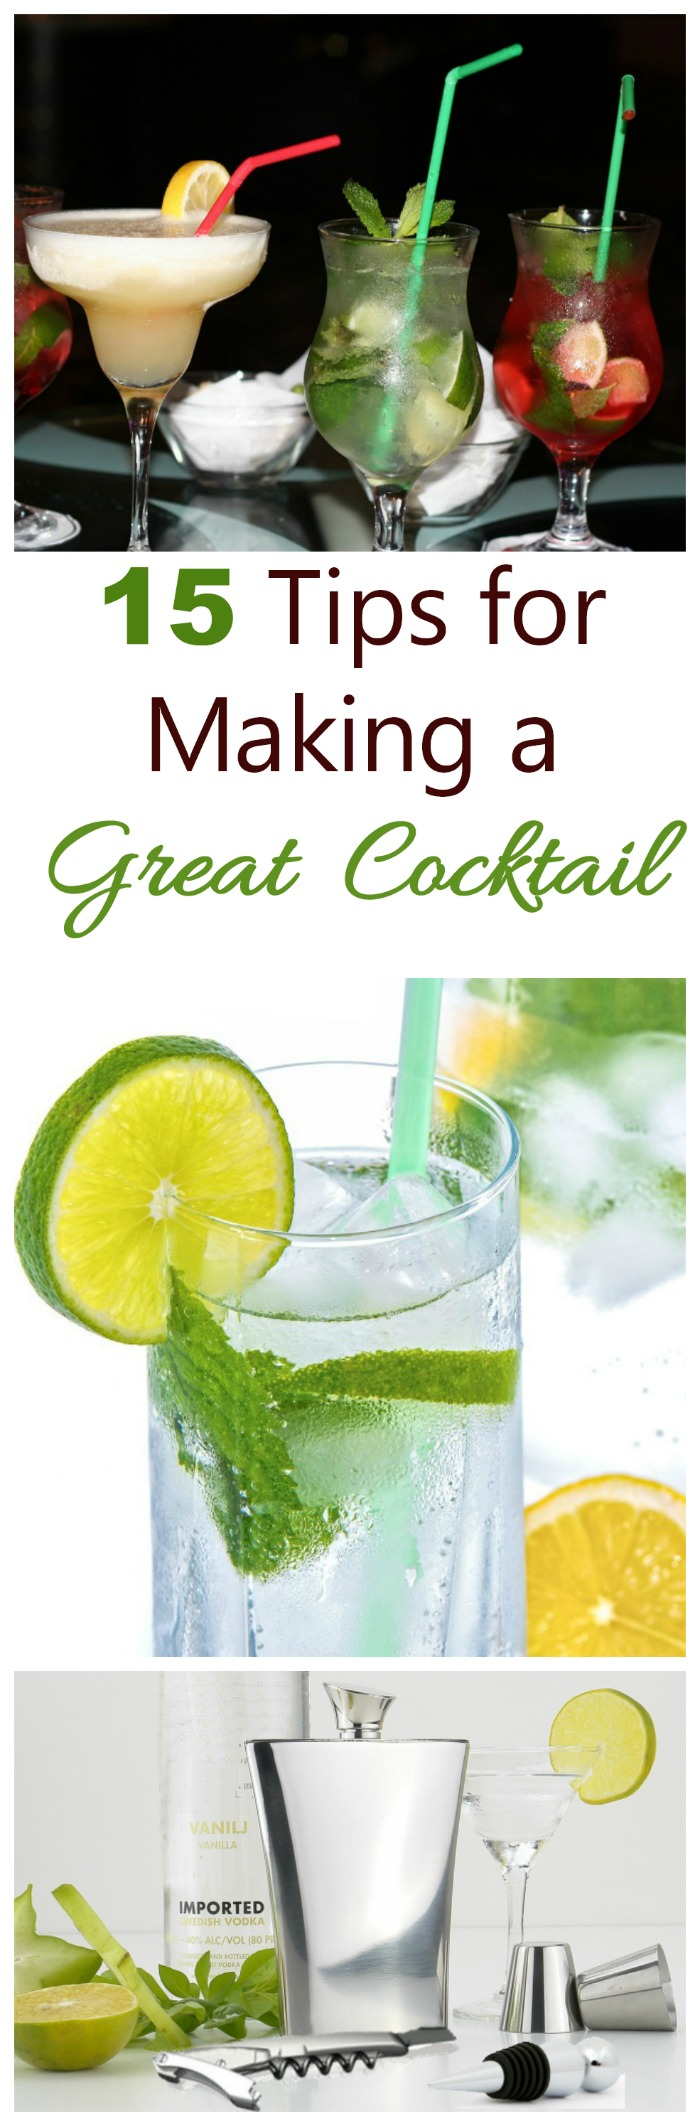 15 tips for making great cocktails